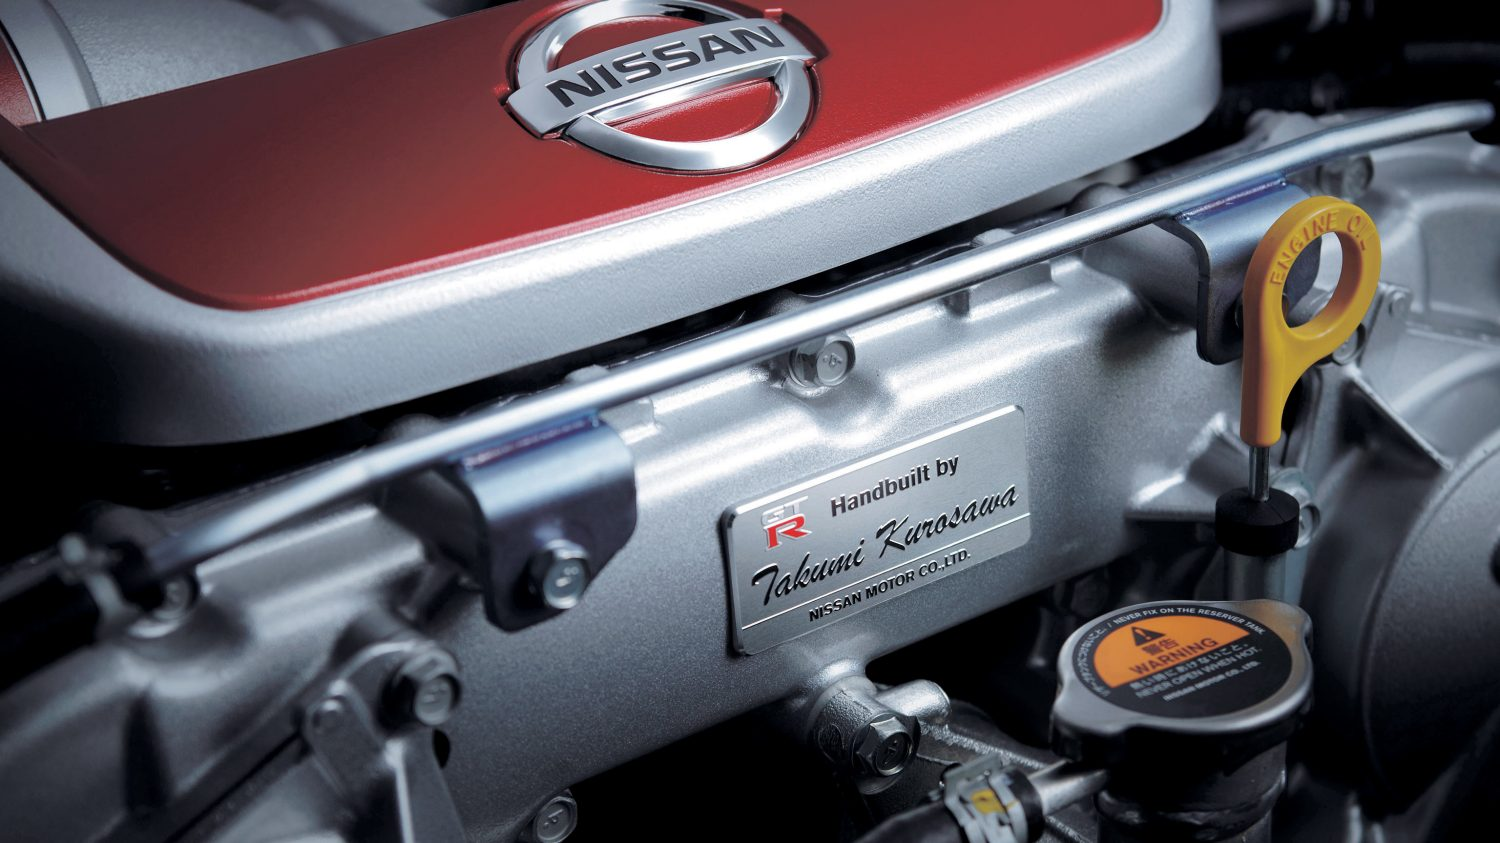 EXTRA CARE. One interesting trait of the GT-R is that its engine is handbuilt. Photo from Nissan's official Philippine website